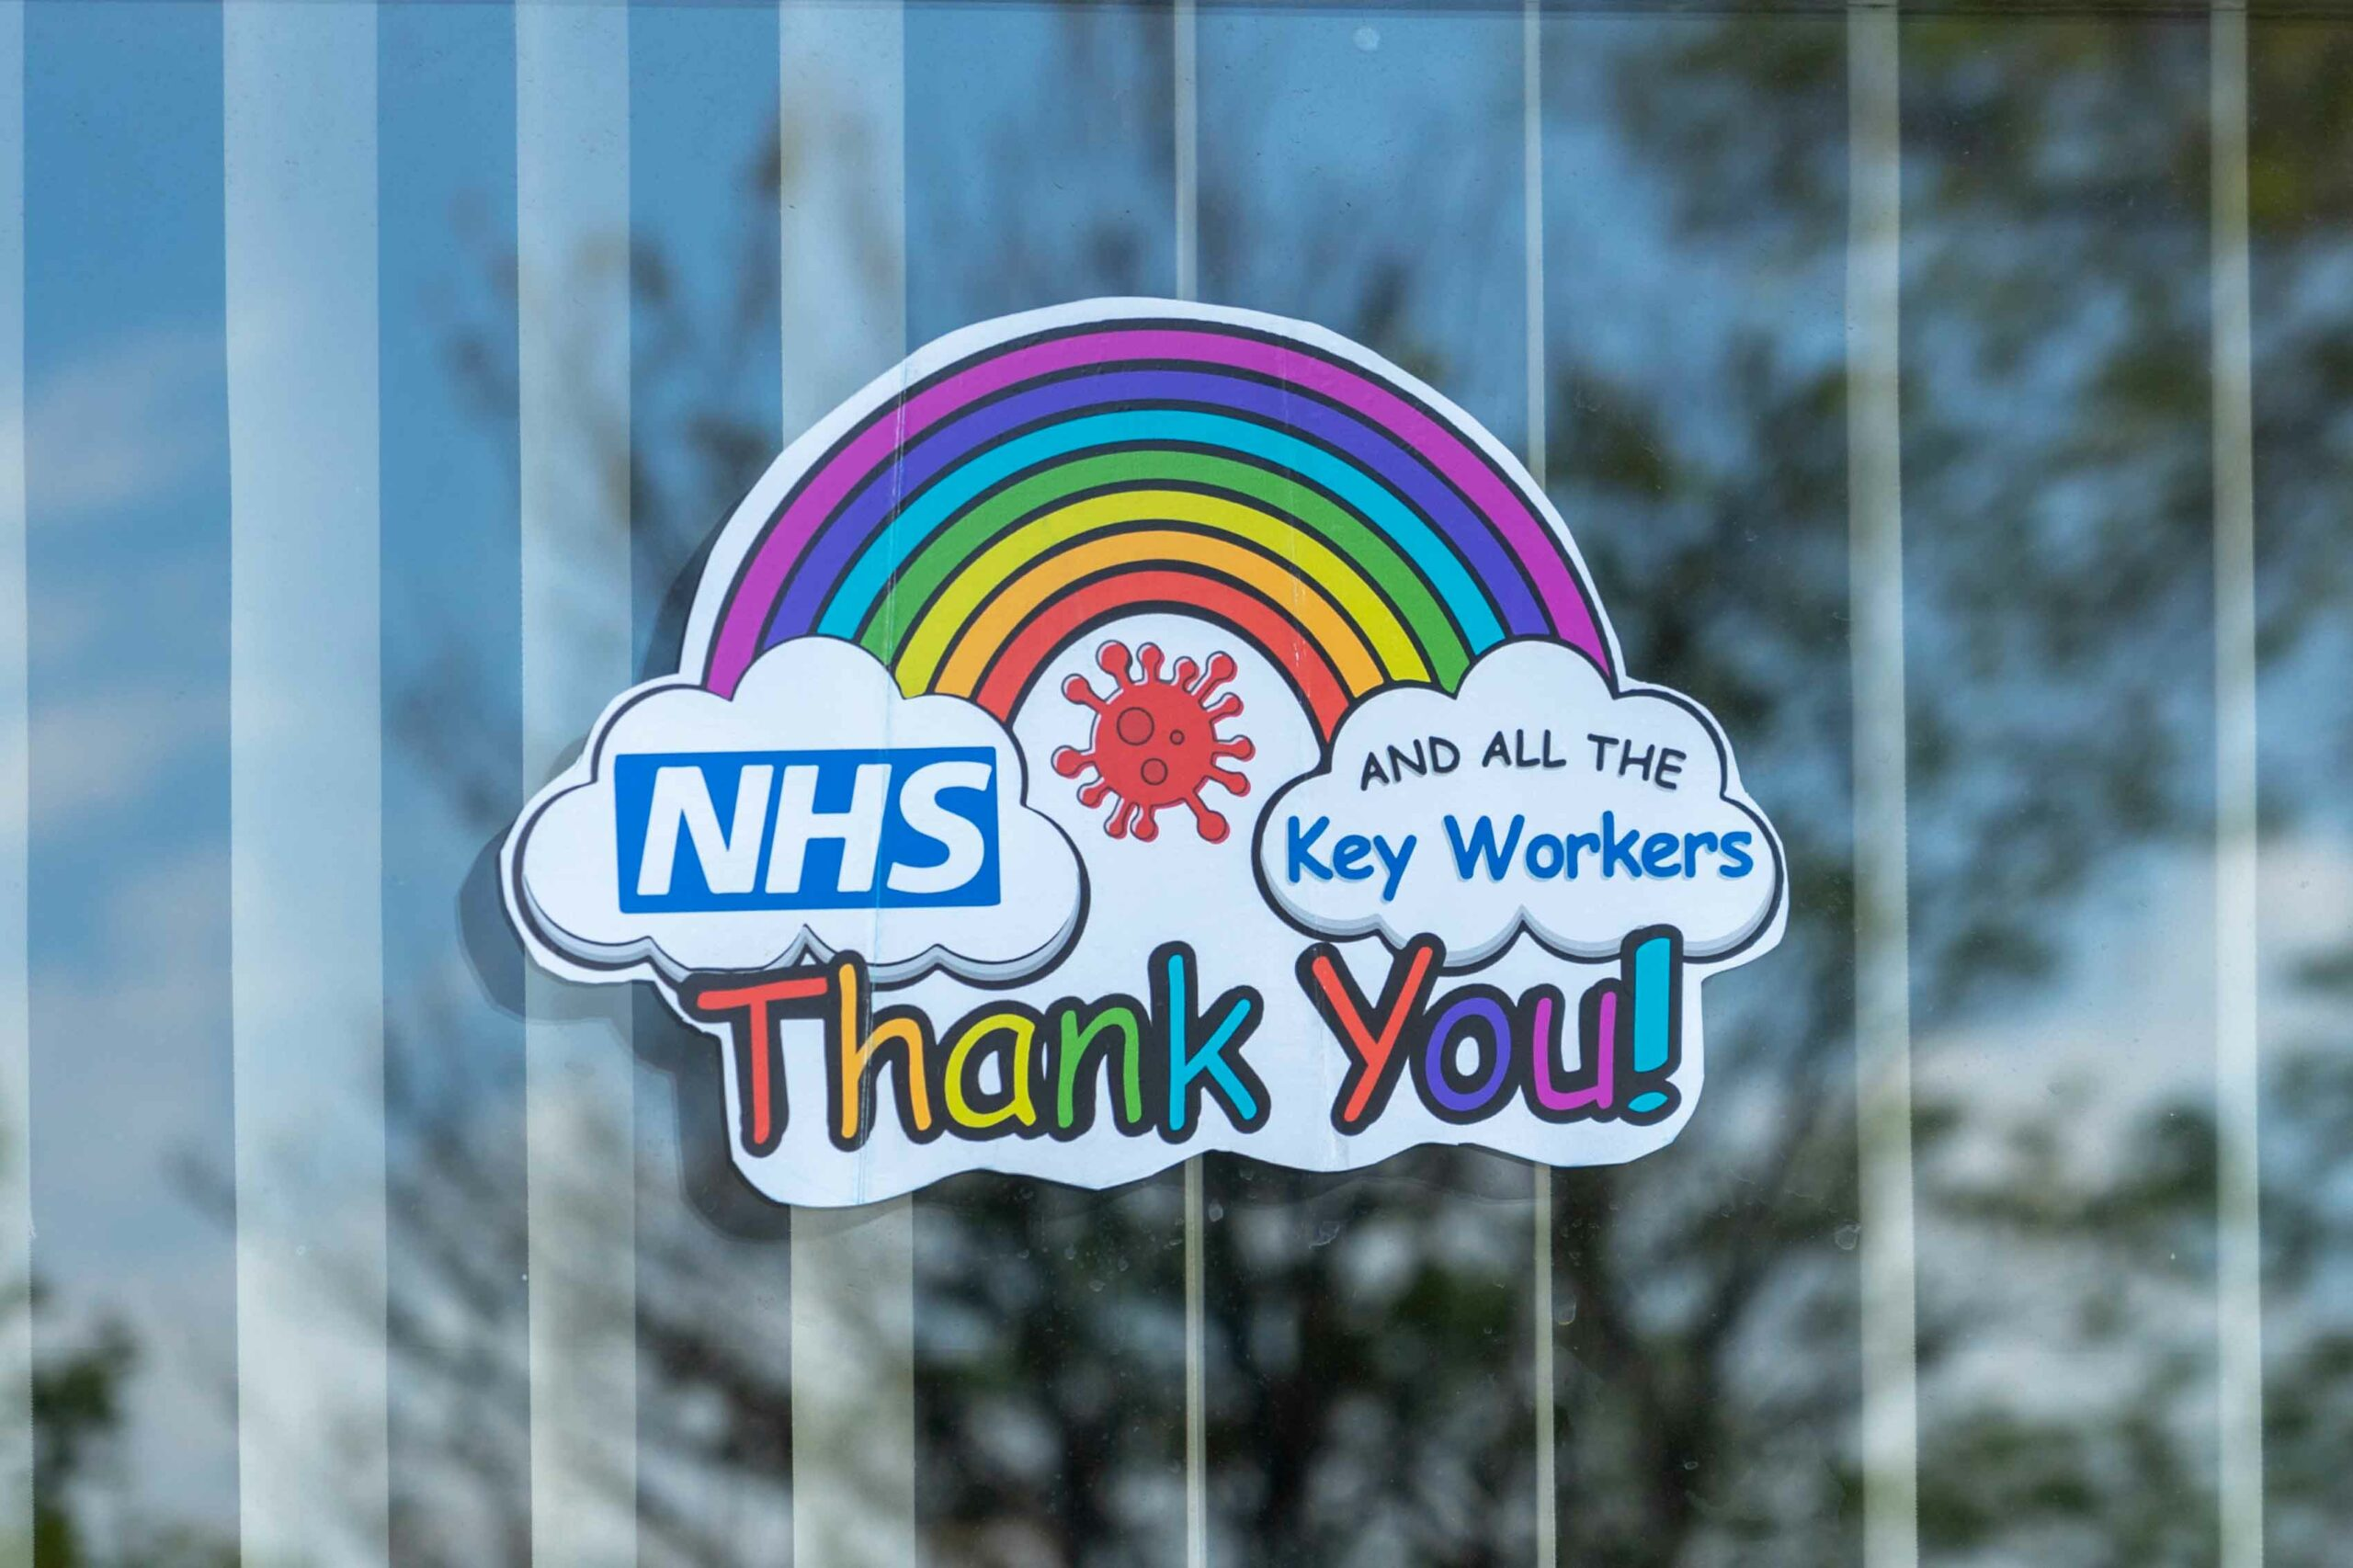 nhs_window_rainbow